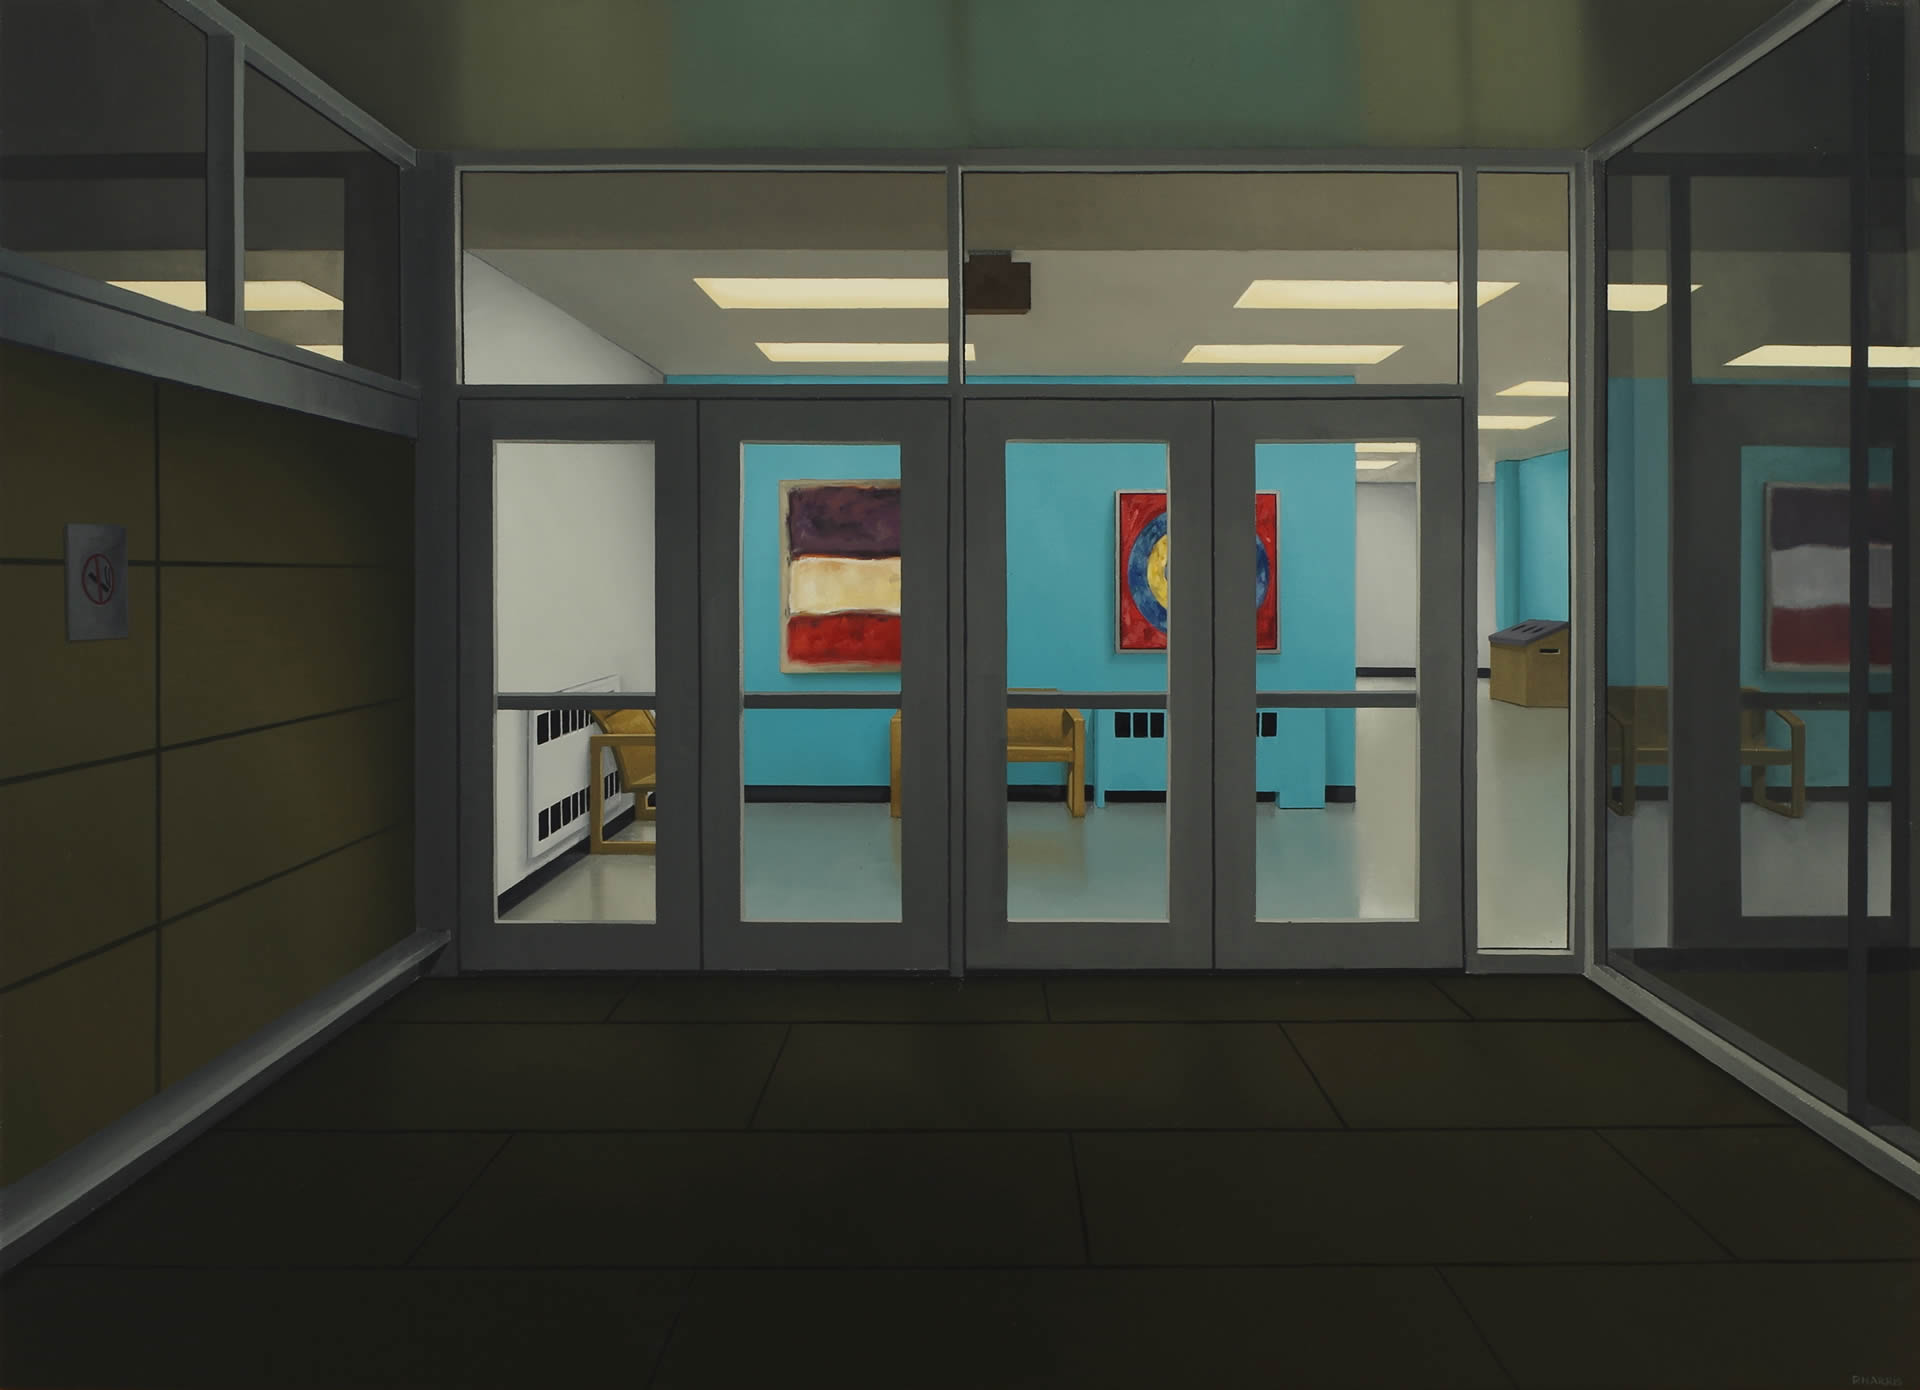 Peter-Harris-Exit-With-Rothko-And-Johns-26x36-Online-Art-Galleries